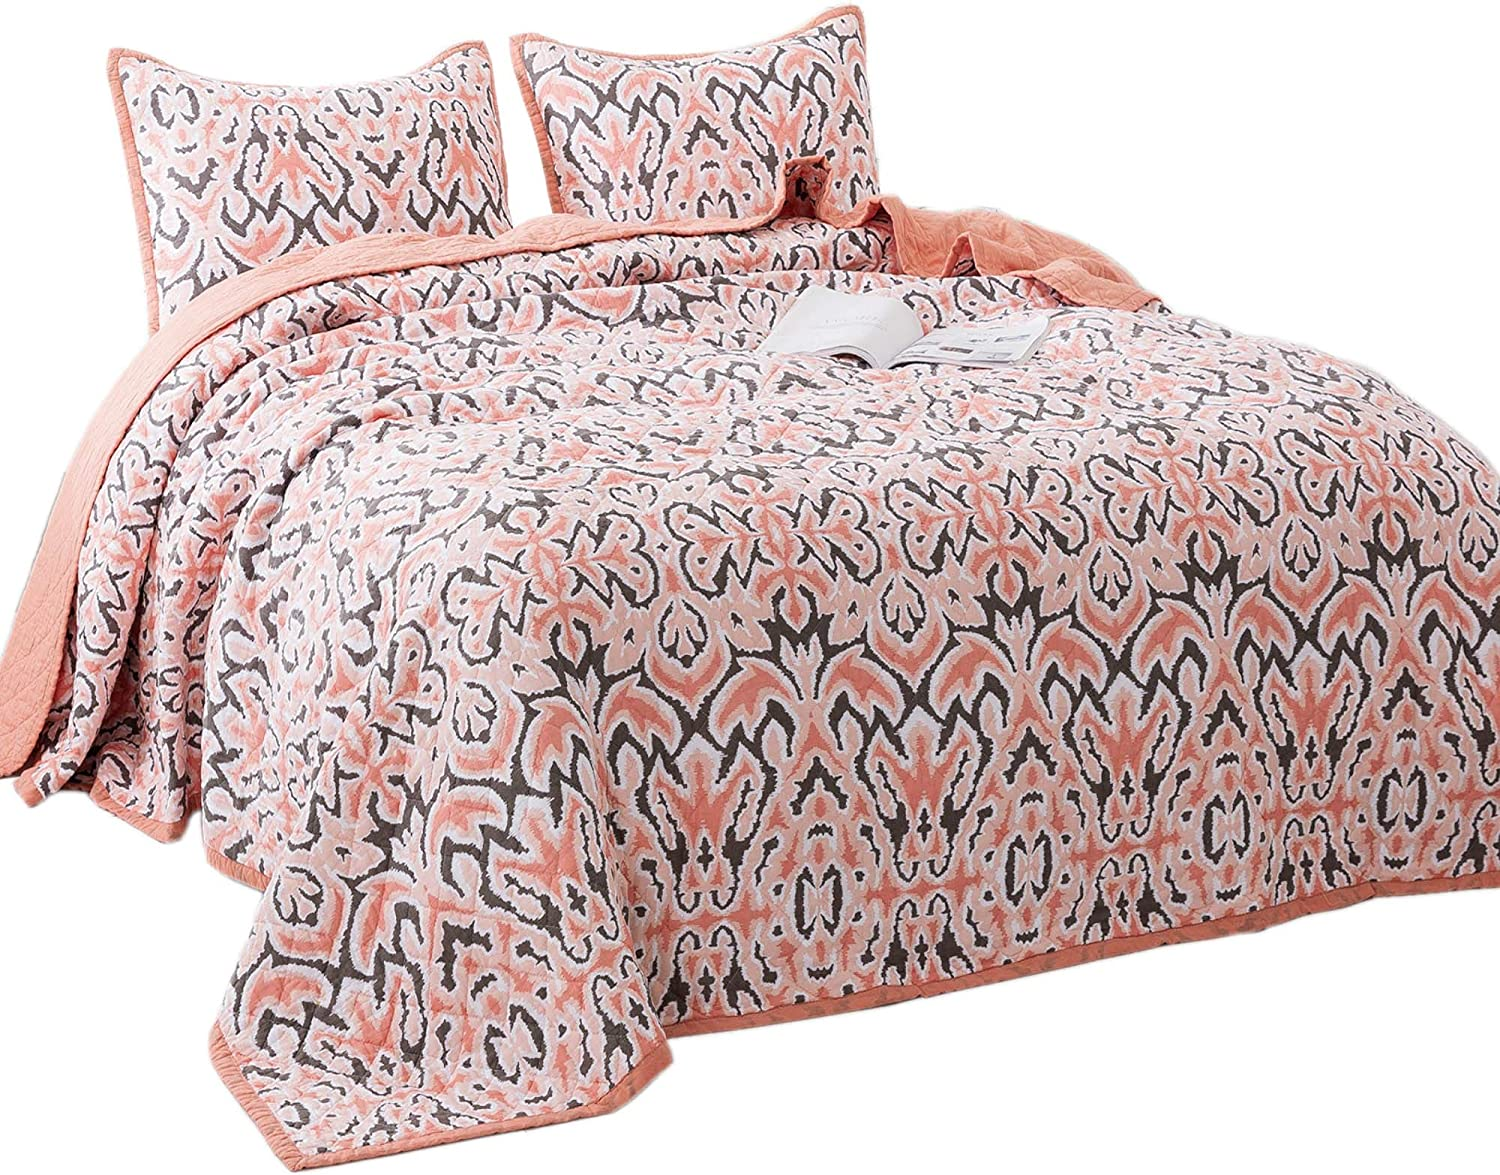 KASENTEX Luxury 3 Piece Quilt Set - Contemporary Oversized Bedding with Lavish Floral Printed Design, 100% Cotton Soft & Warm Reversible Bedspread (Floral Pink, King + 2 King Shams 112x106+20x36 x2)